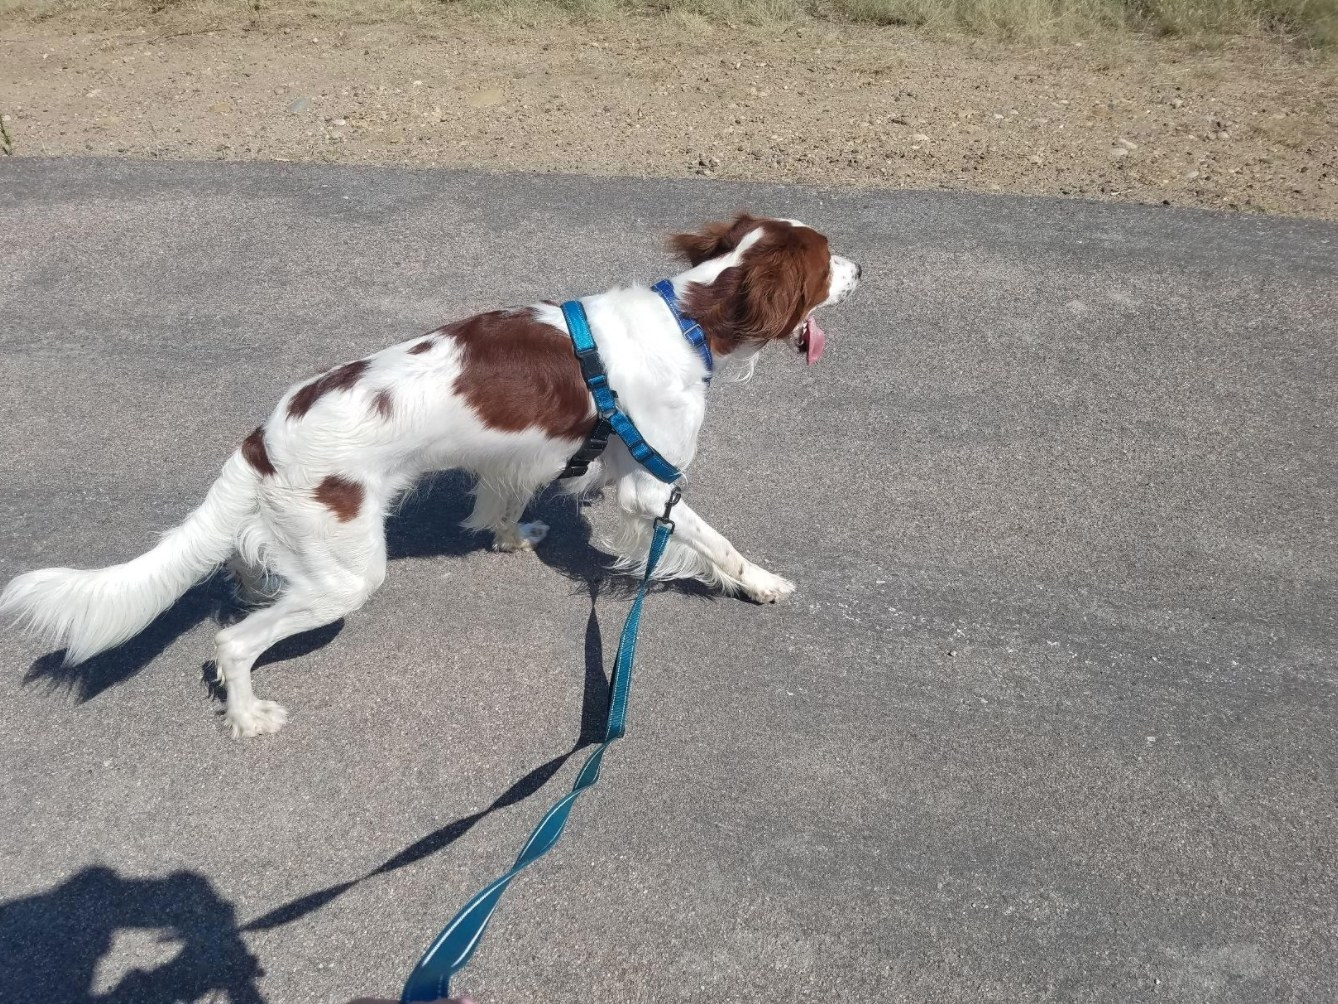 The reviewer's dog using the ocean colored harness